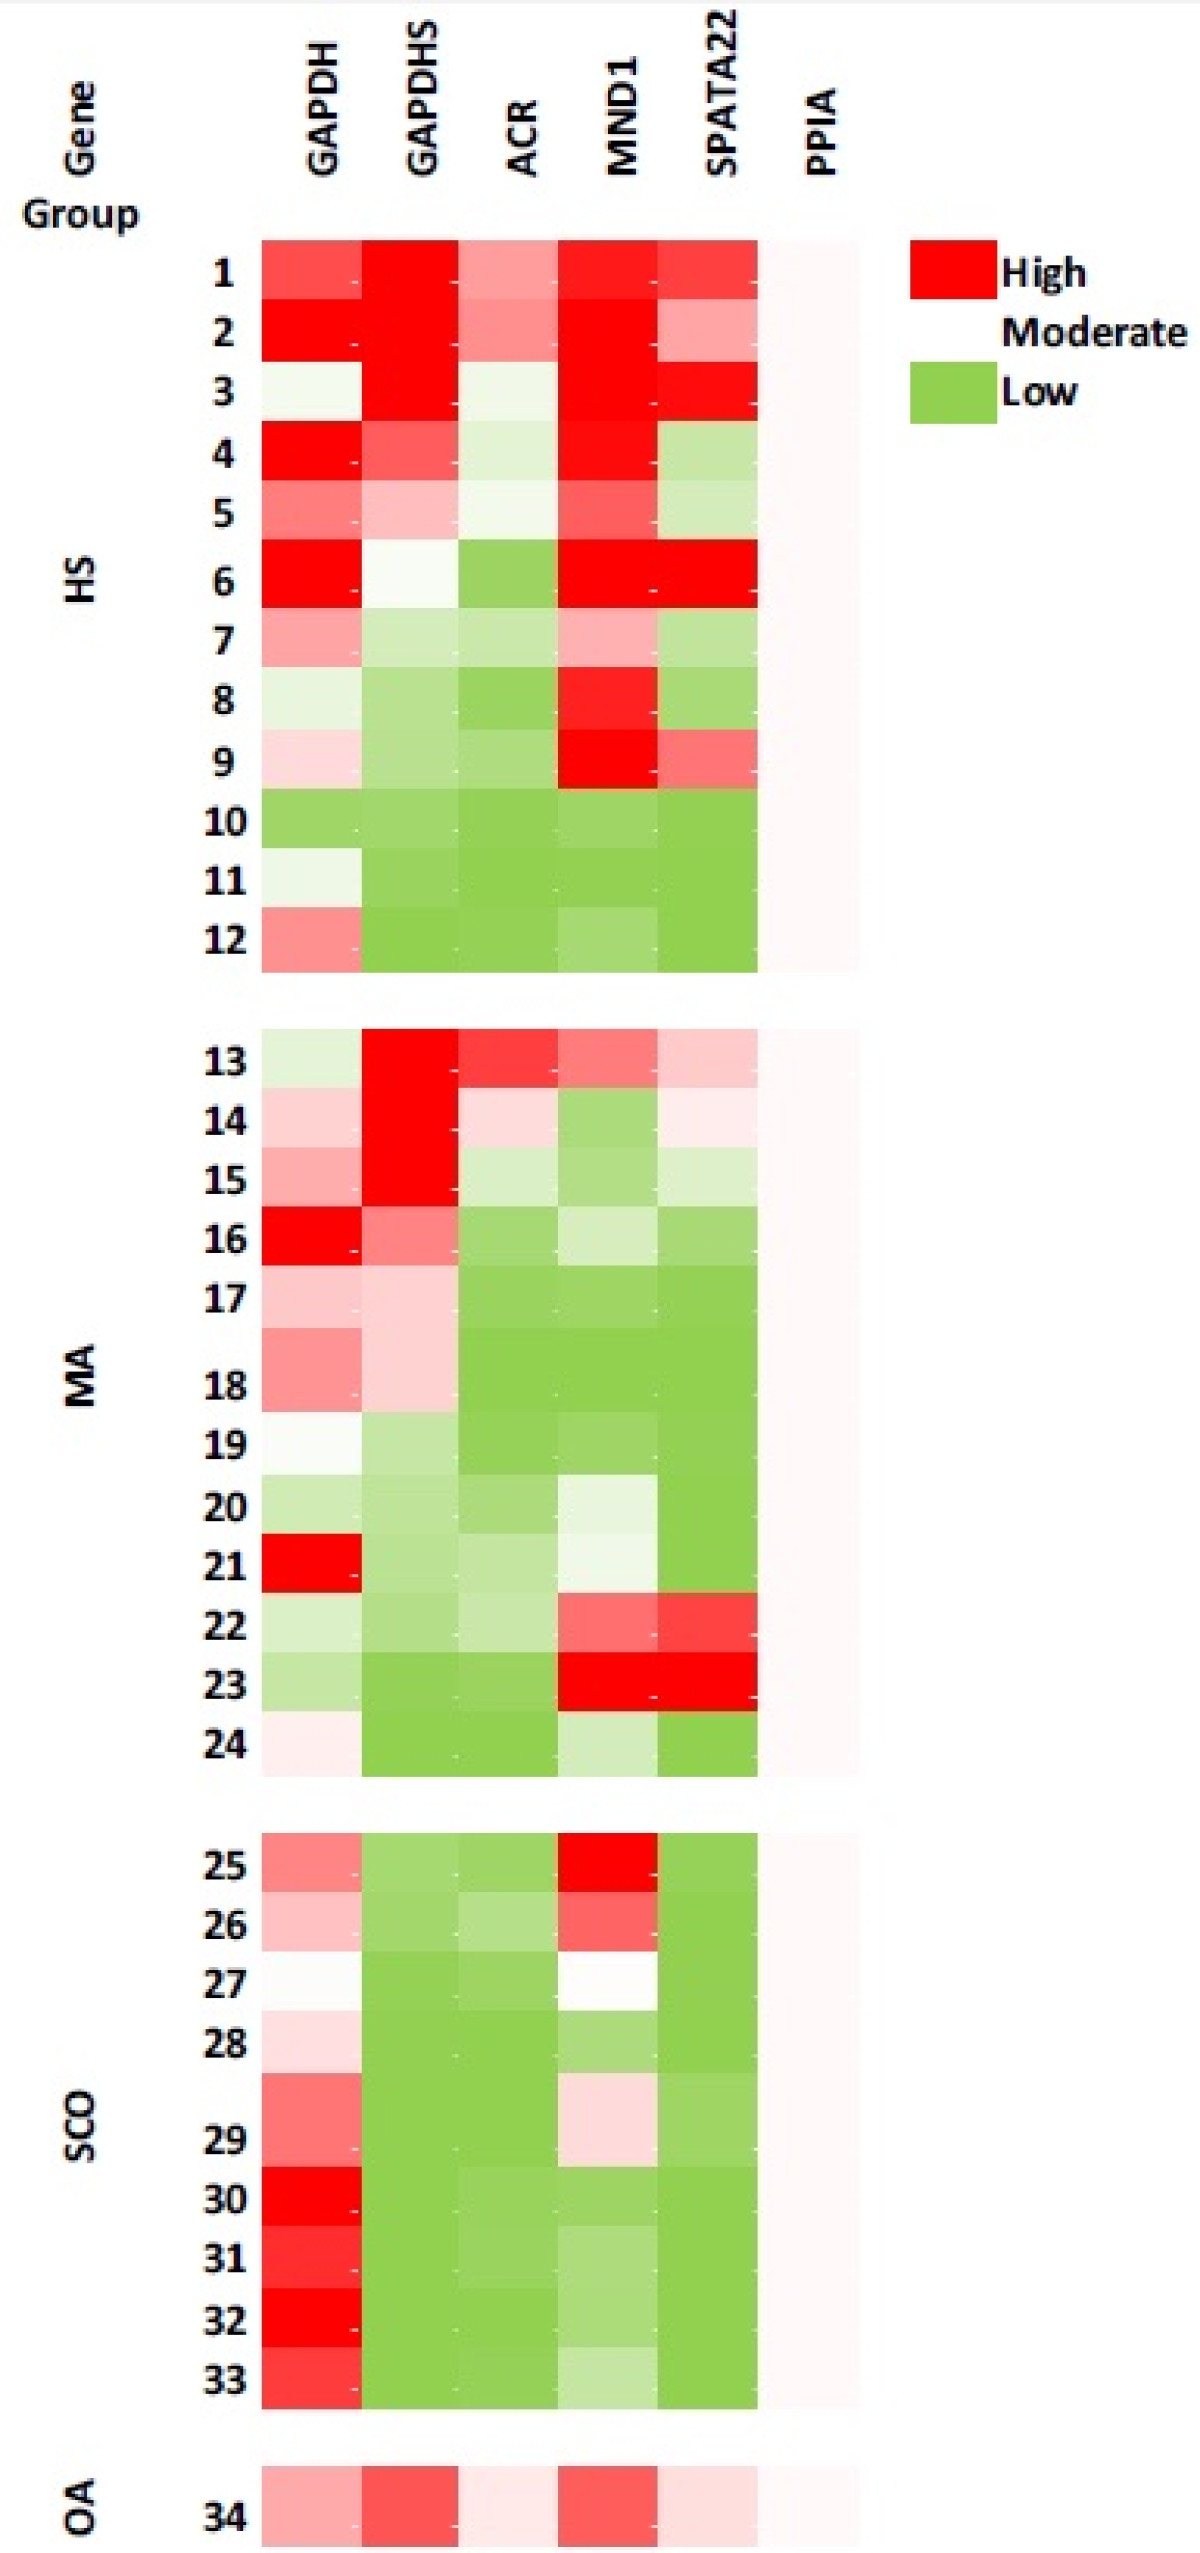 http://static-content.springer.com/image/art%3A10.1186%2F1477-7827-11-42/MediaObjects/12958_2012_Article_1100_Fig1_HTML.jpg